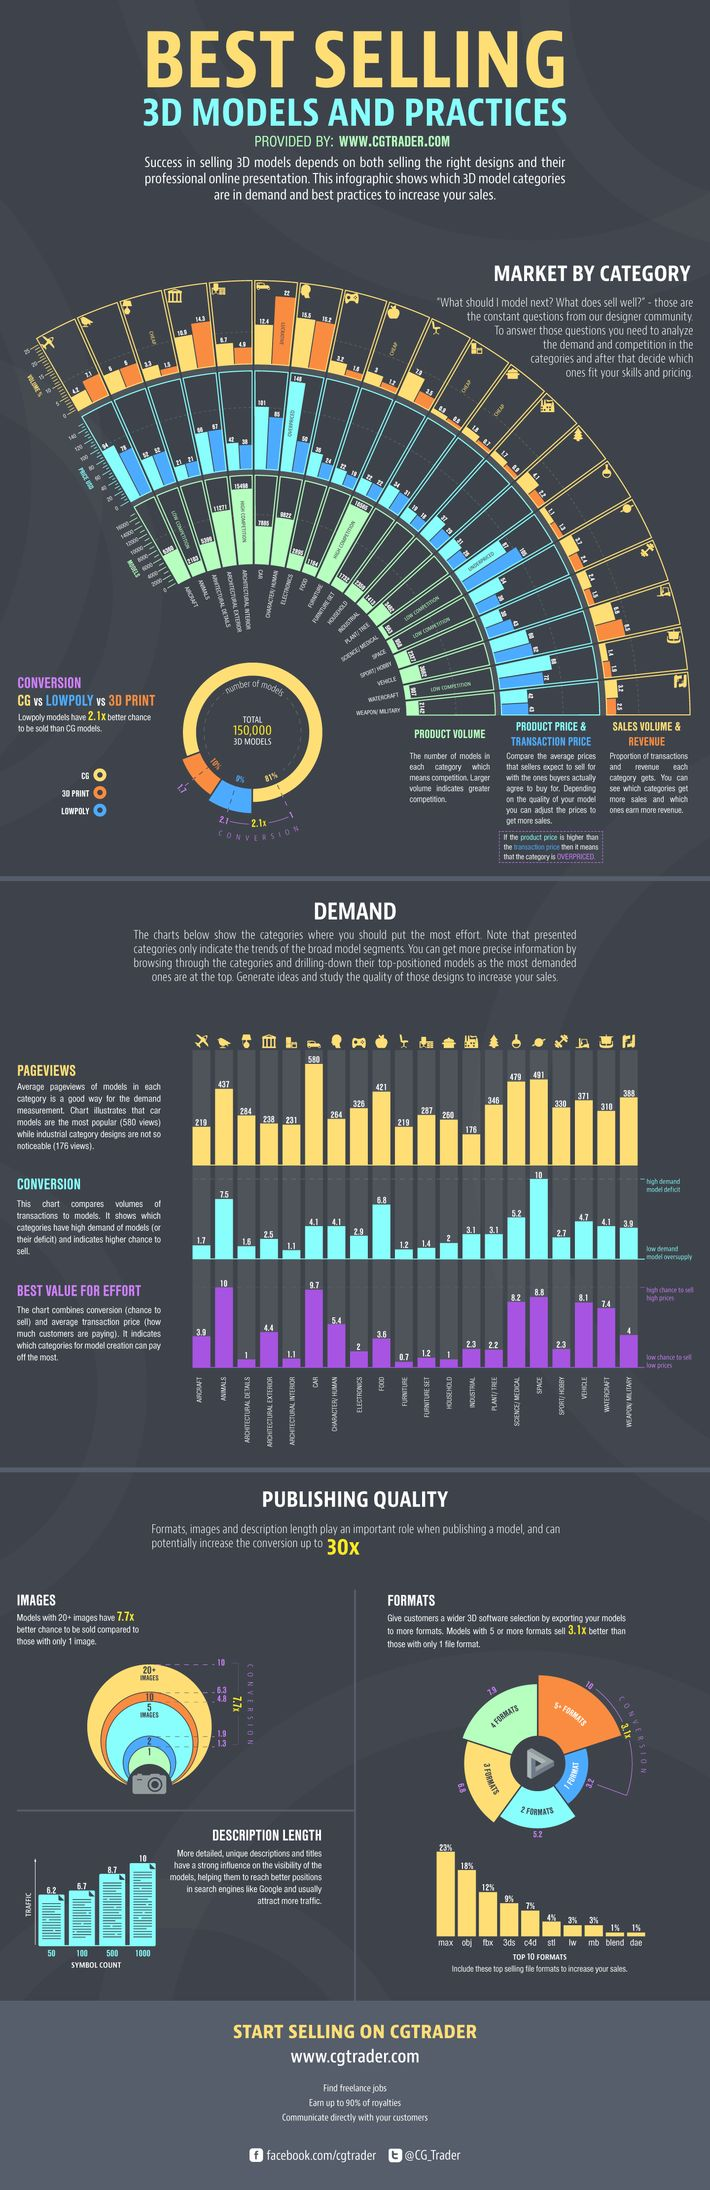 INFOGRAPHIC: Best Selling 3D Models and Practices - Blog - CGTrader.com